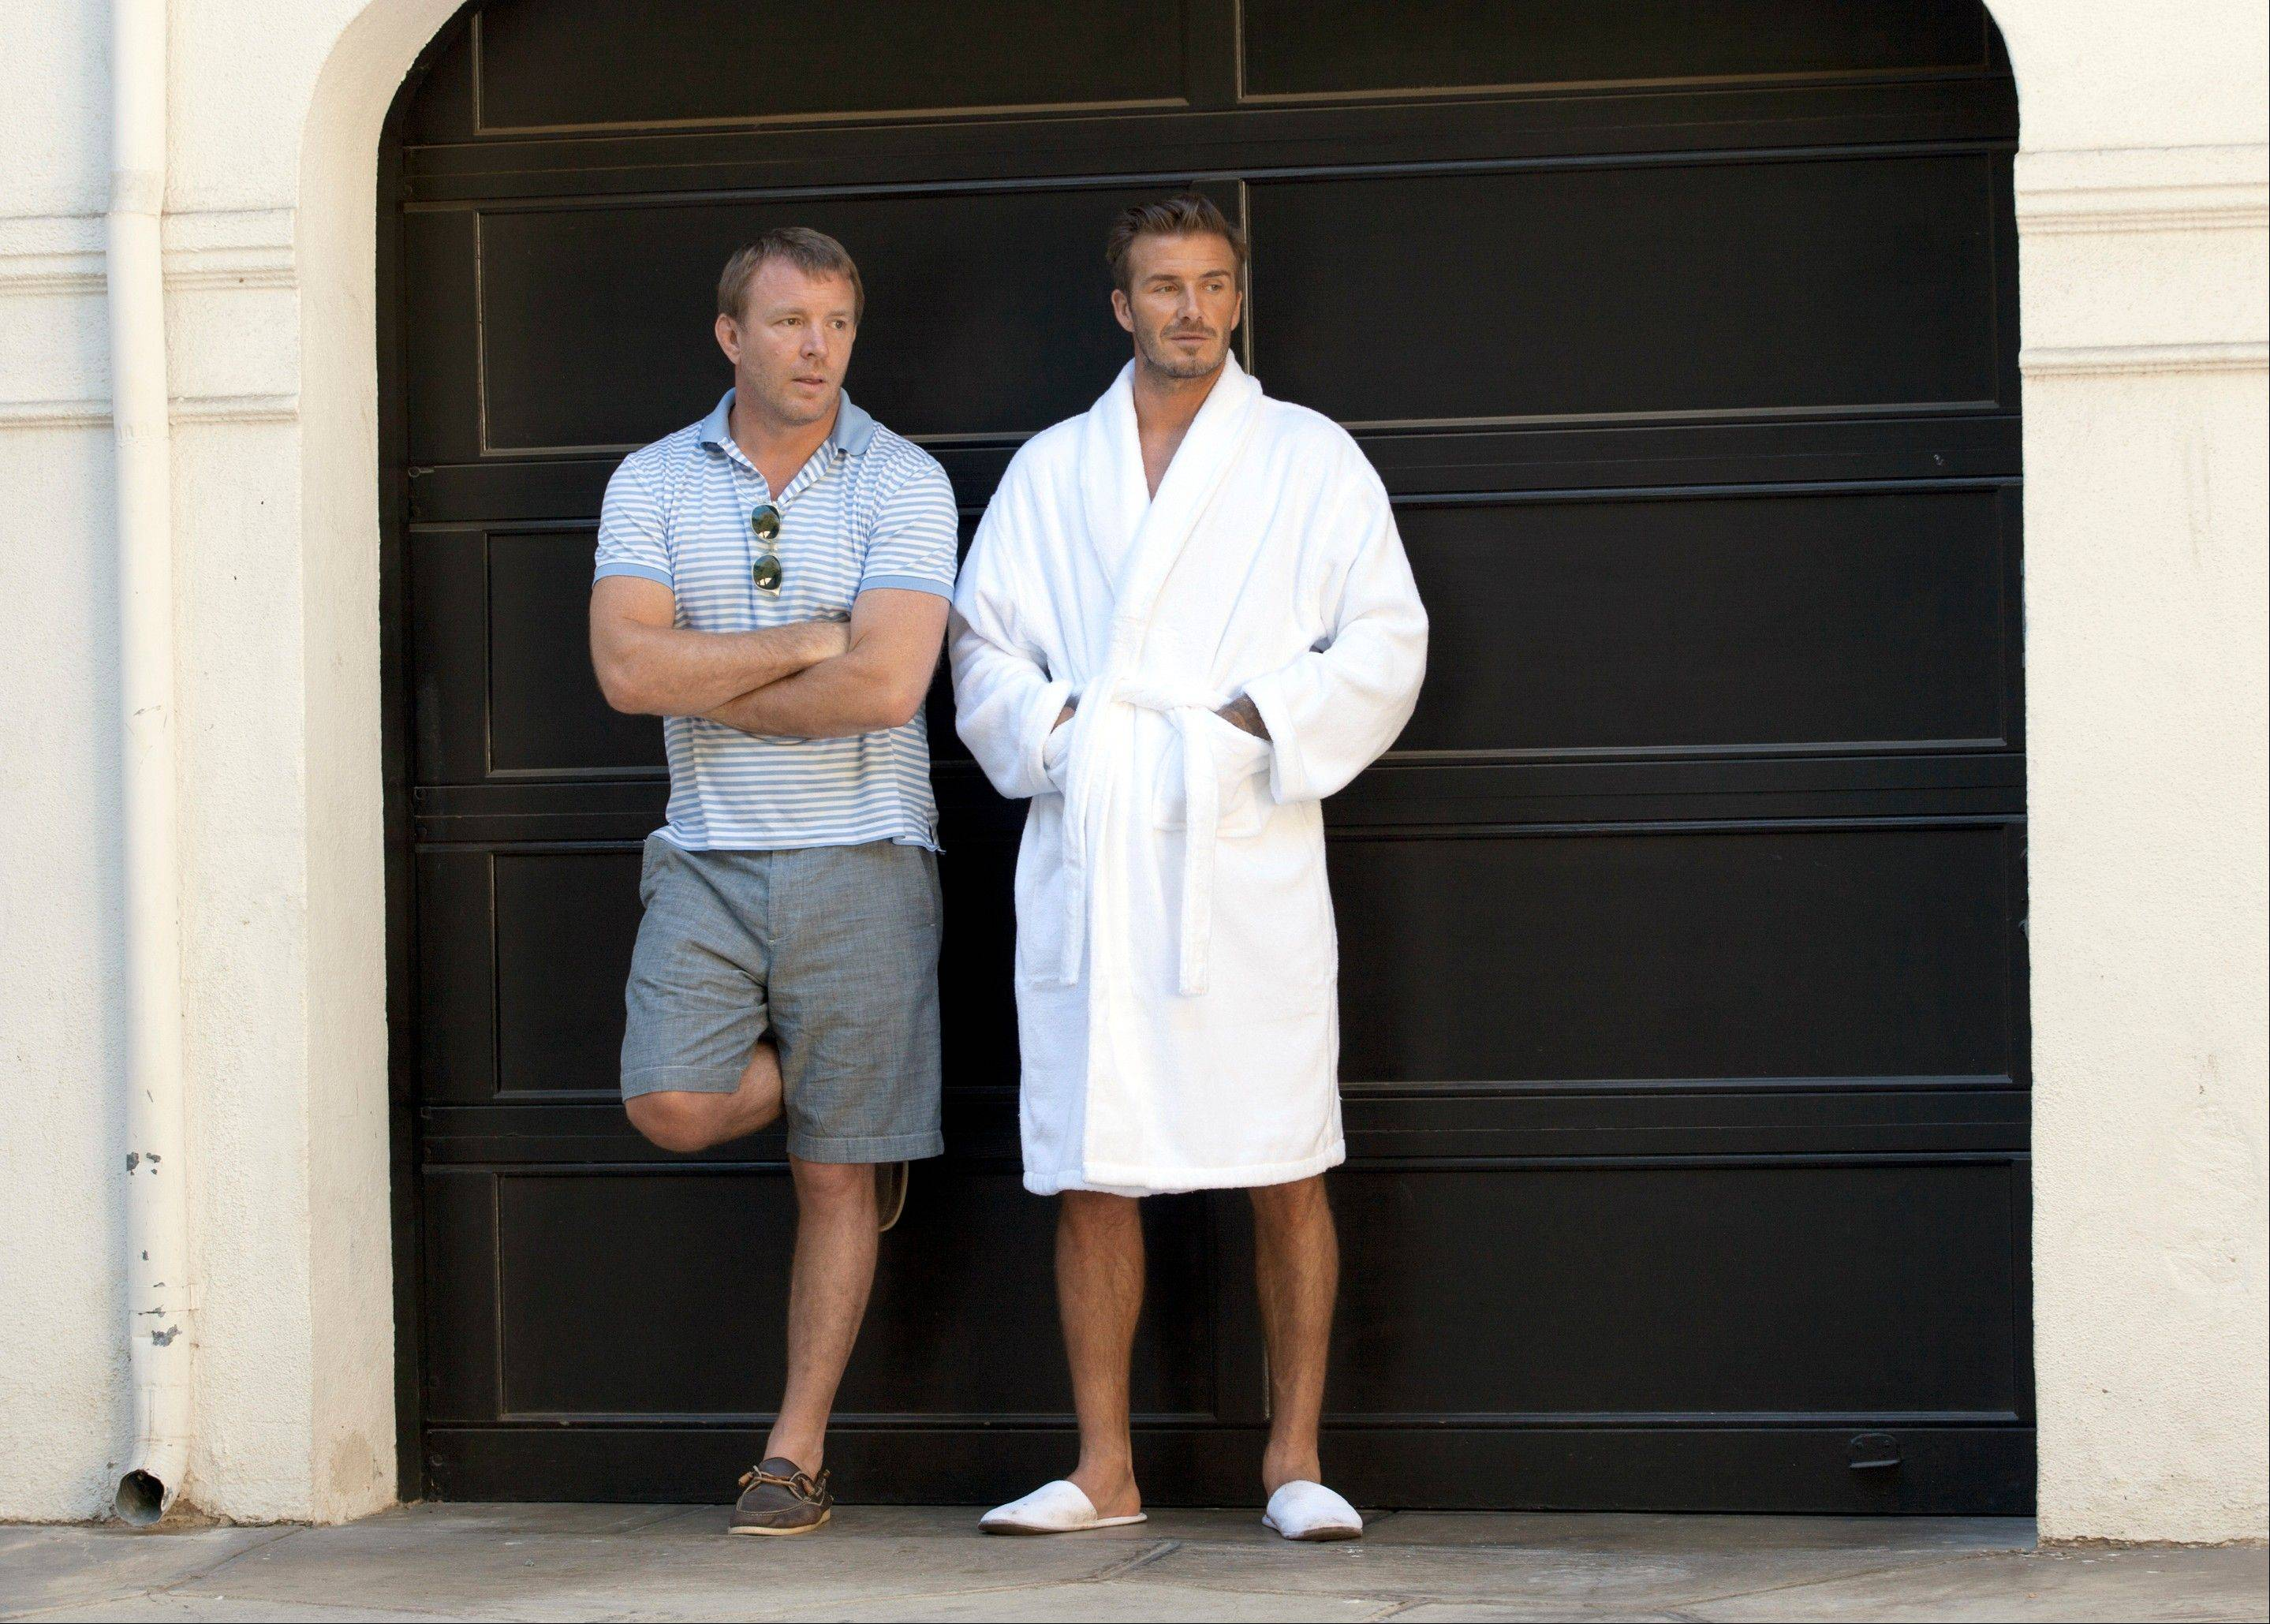 Soccer star David Beckham, right, and director Guy Ritchie on the set of Beckham's newest ad campaign for his bodywear collection in Los Angeles.